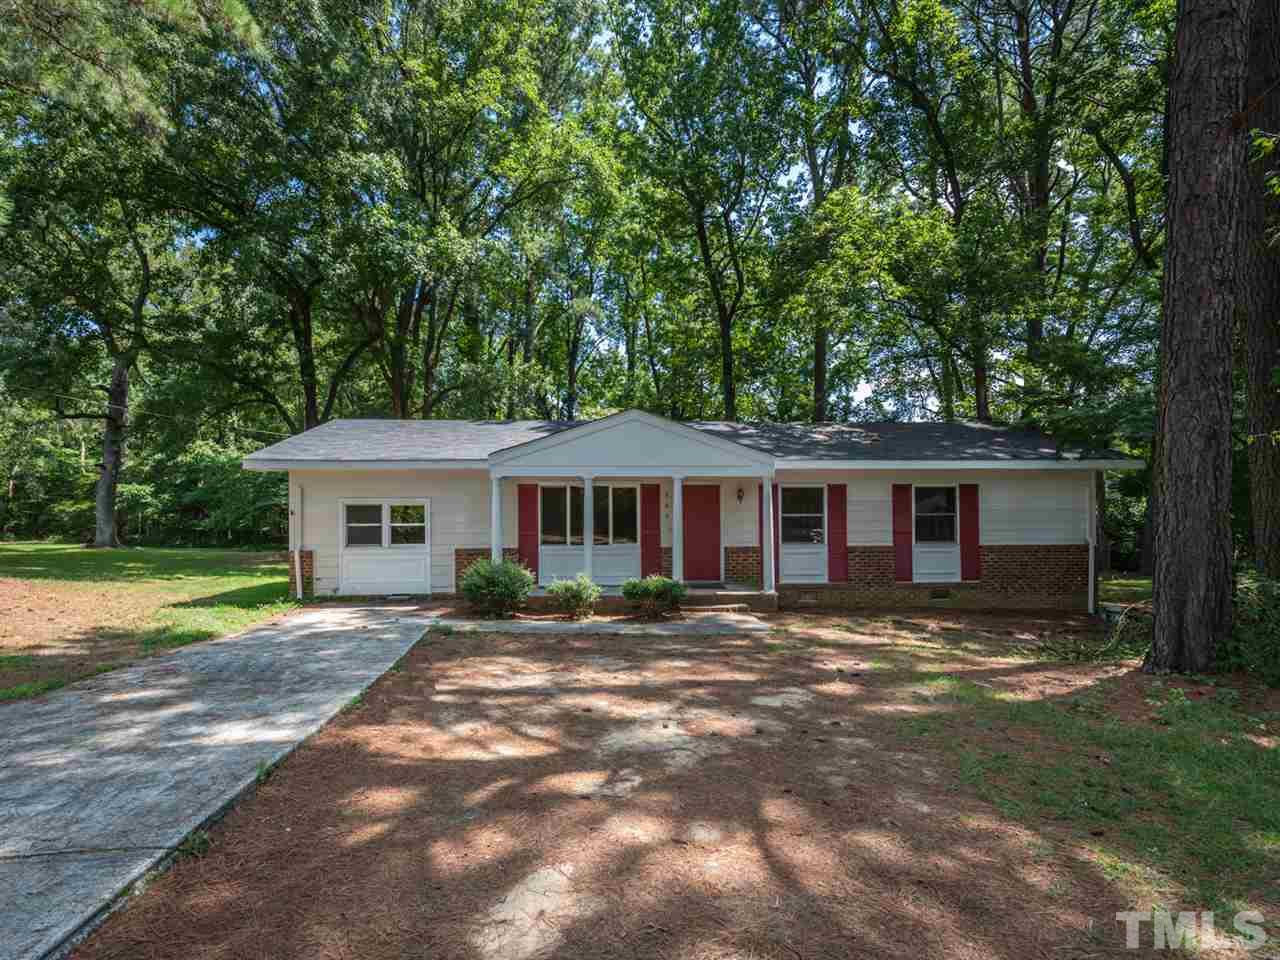 309 DALE PLACE, KNIGHTDALE, NC 27545